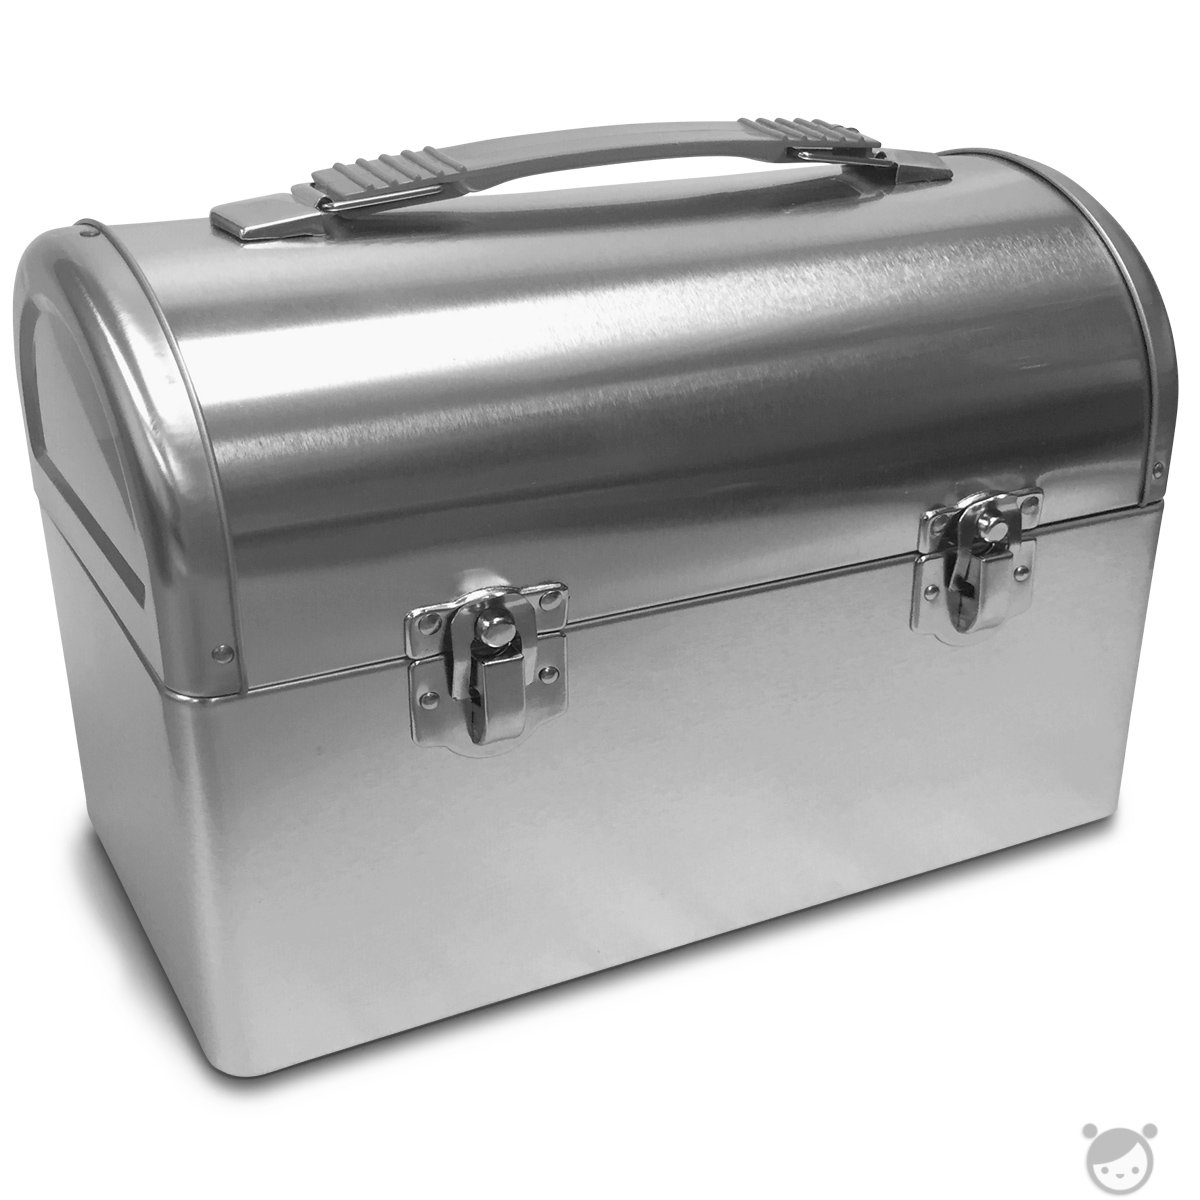 Plain Metal Dome Lunch Box - Silver 0